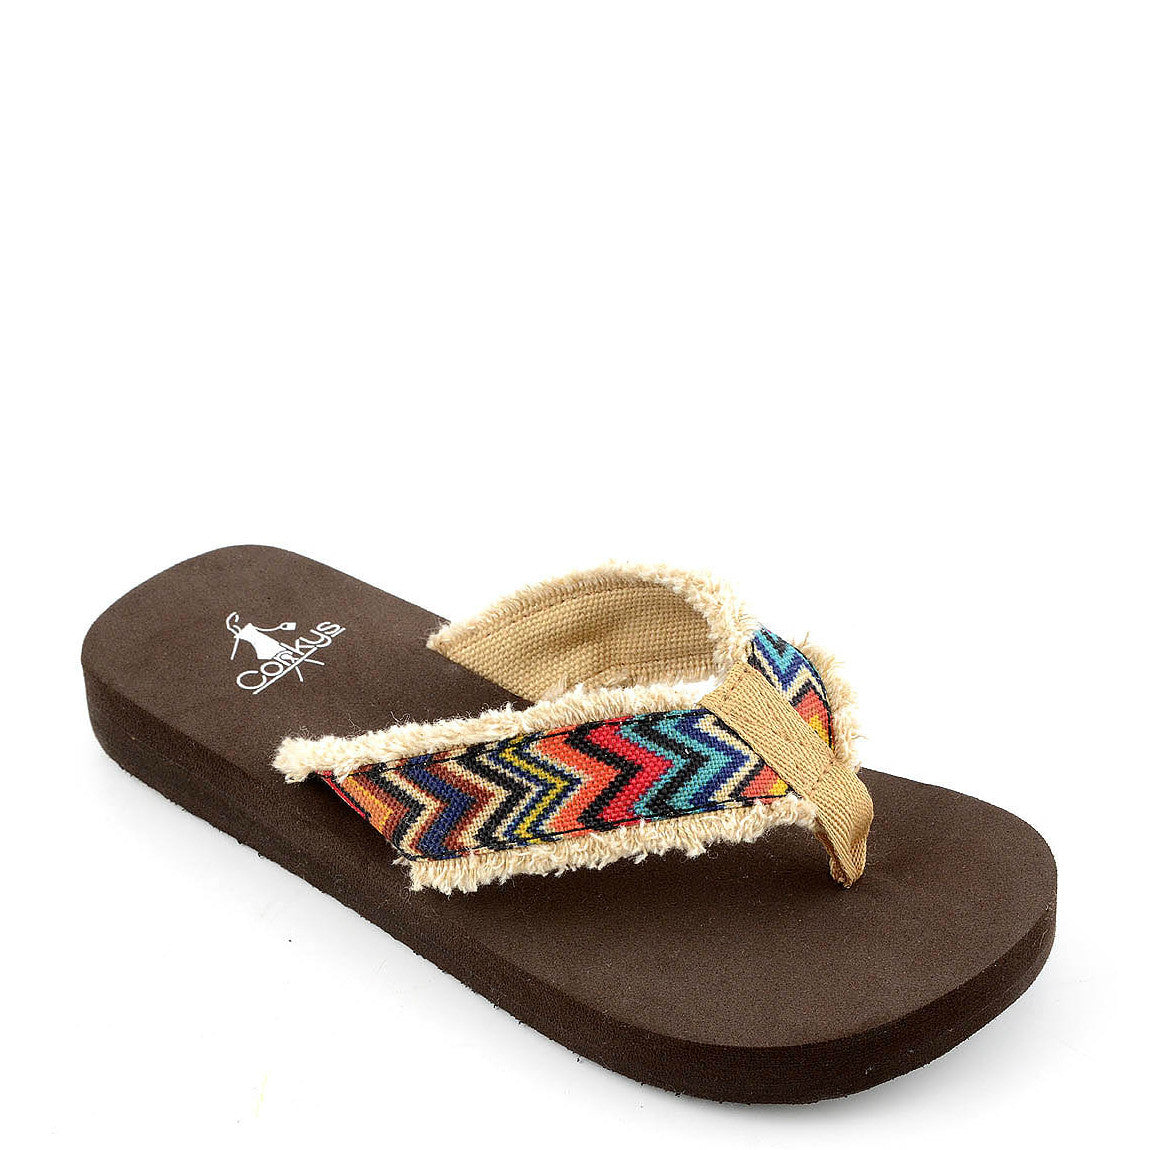 Corkys Kid's Star Flip Flops - Bright Multi 01-2530